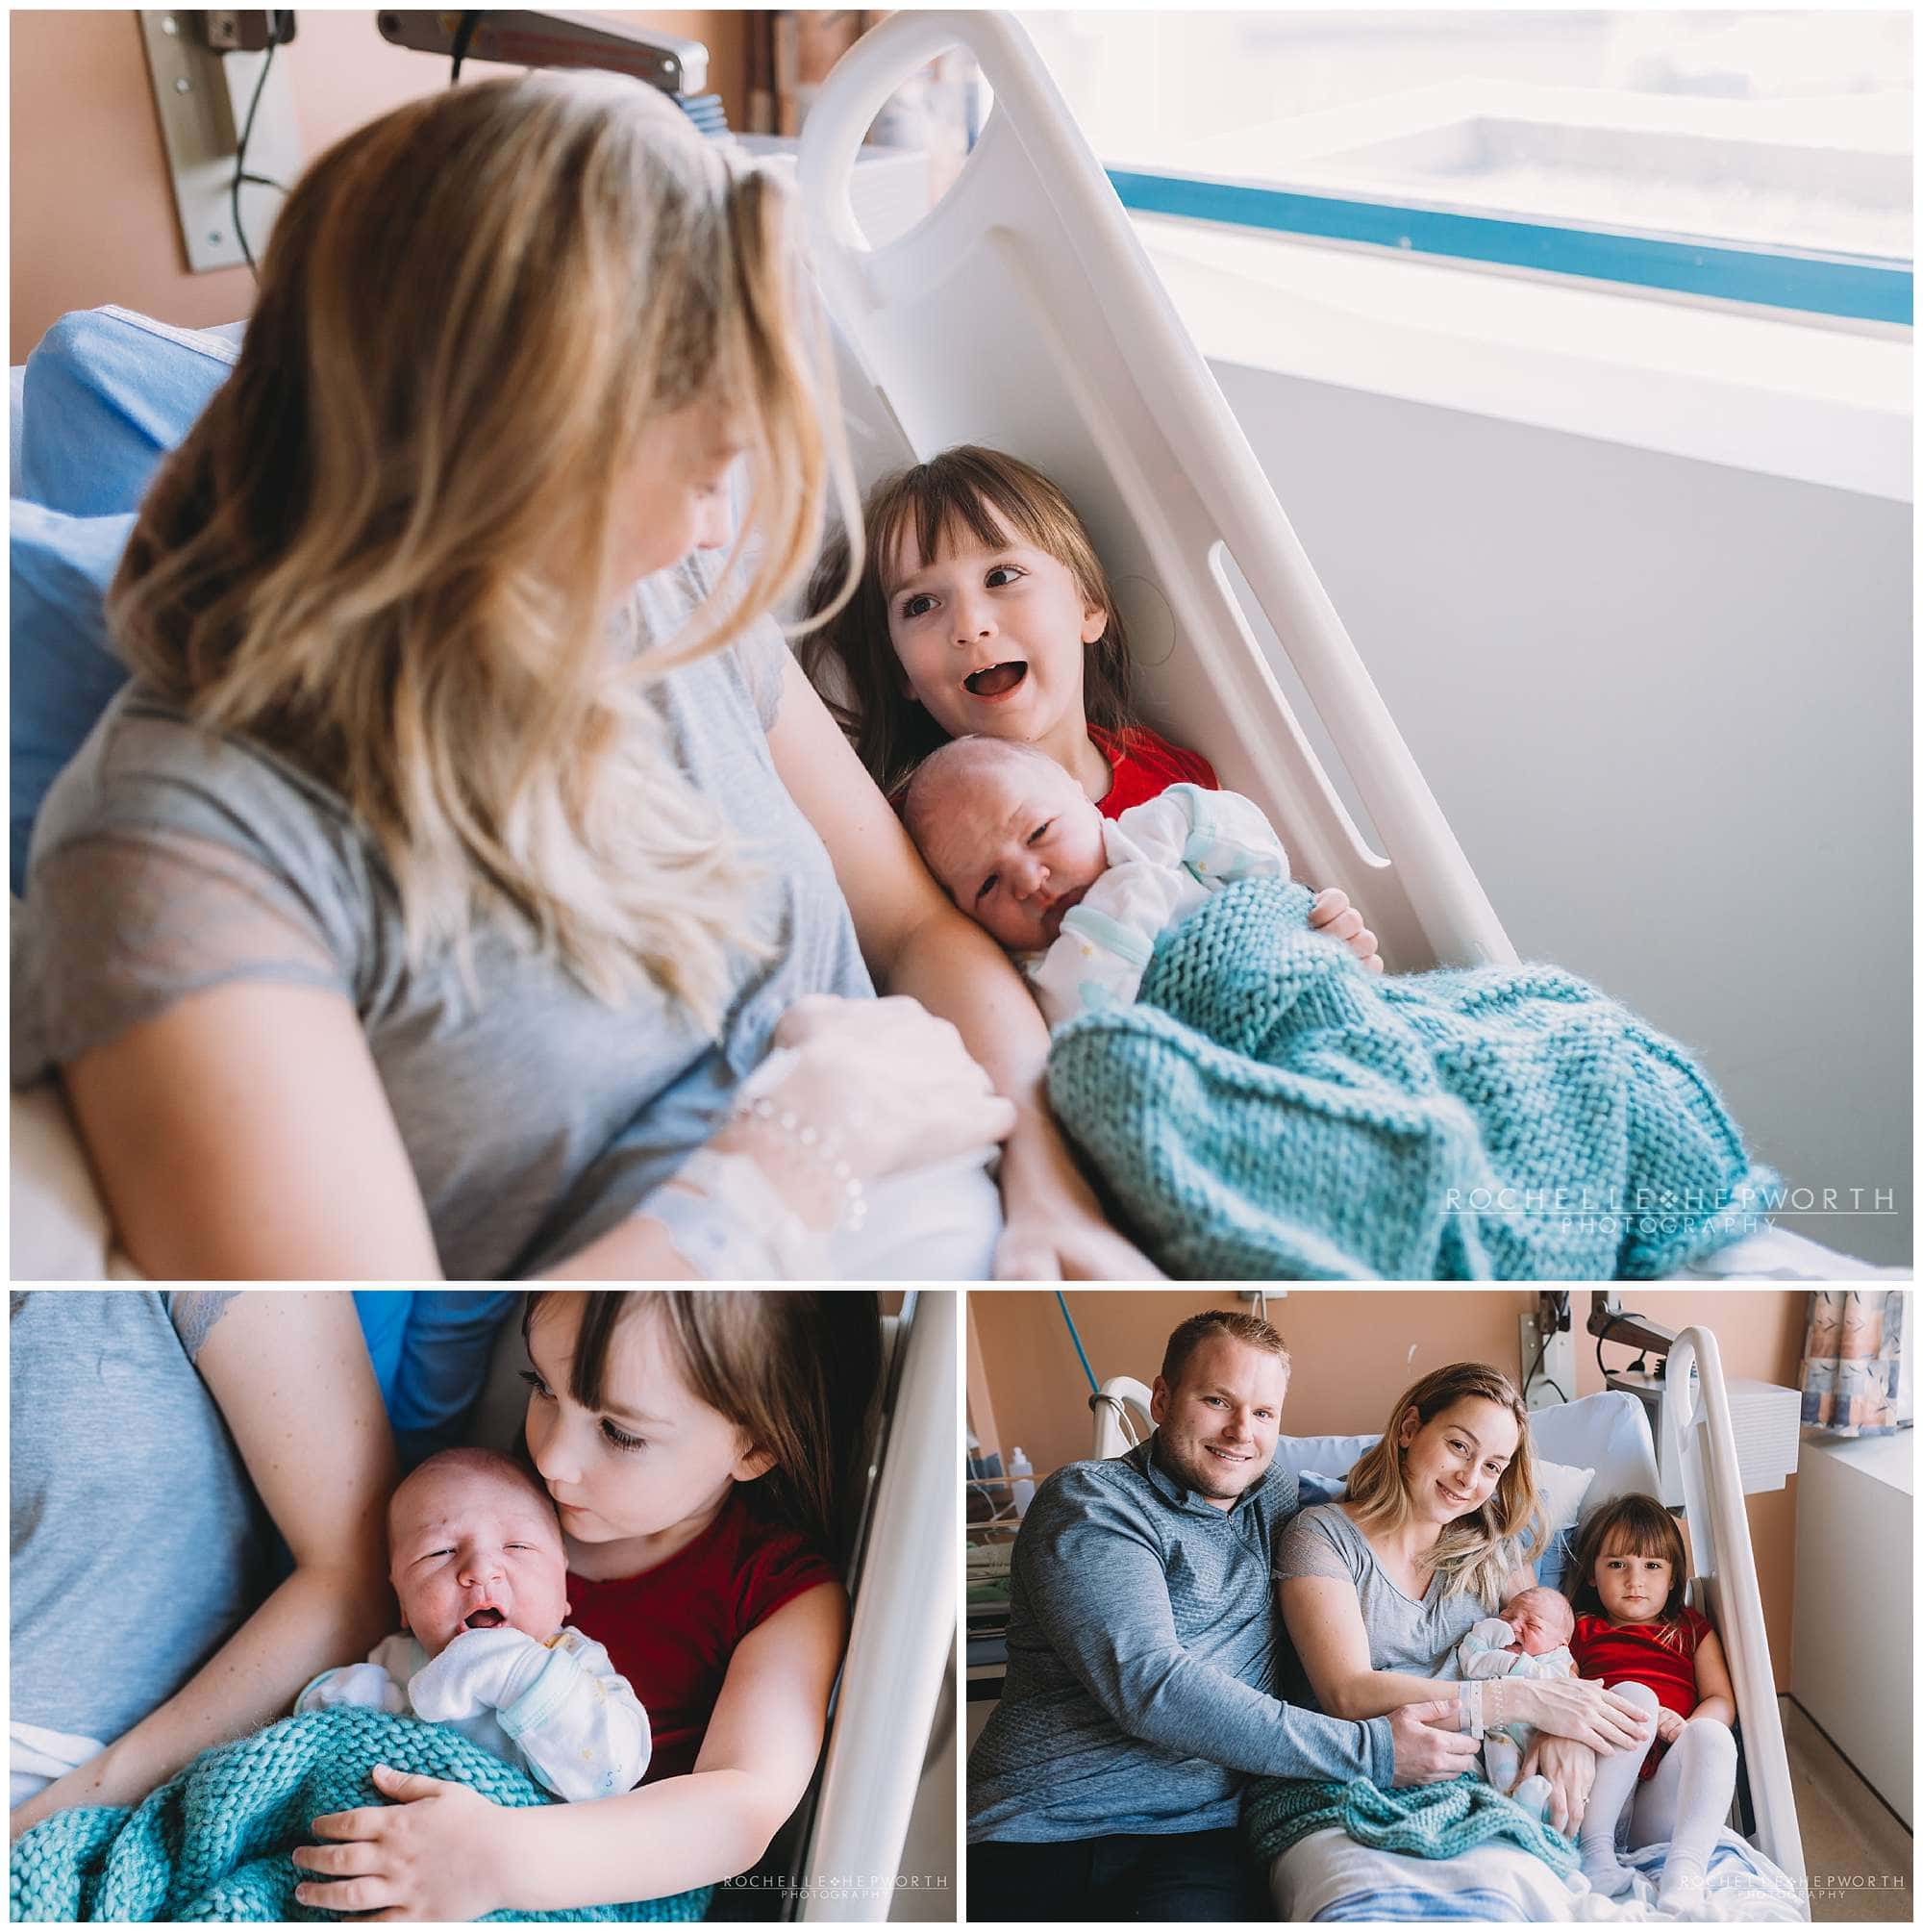 sister cuddling new baby brother next to mom in hospital bed